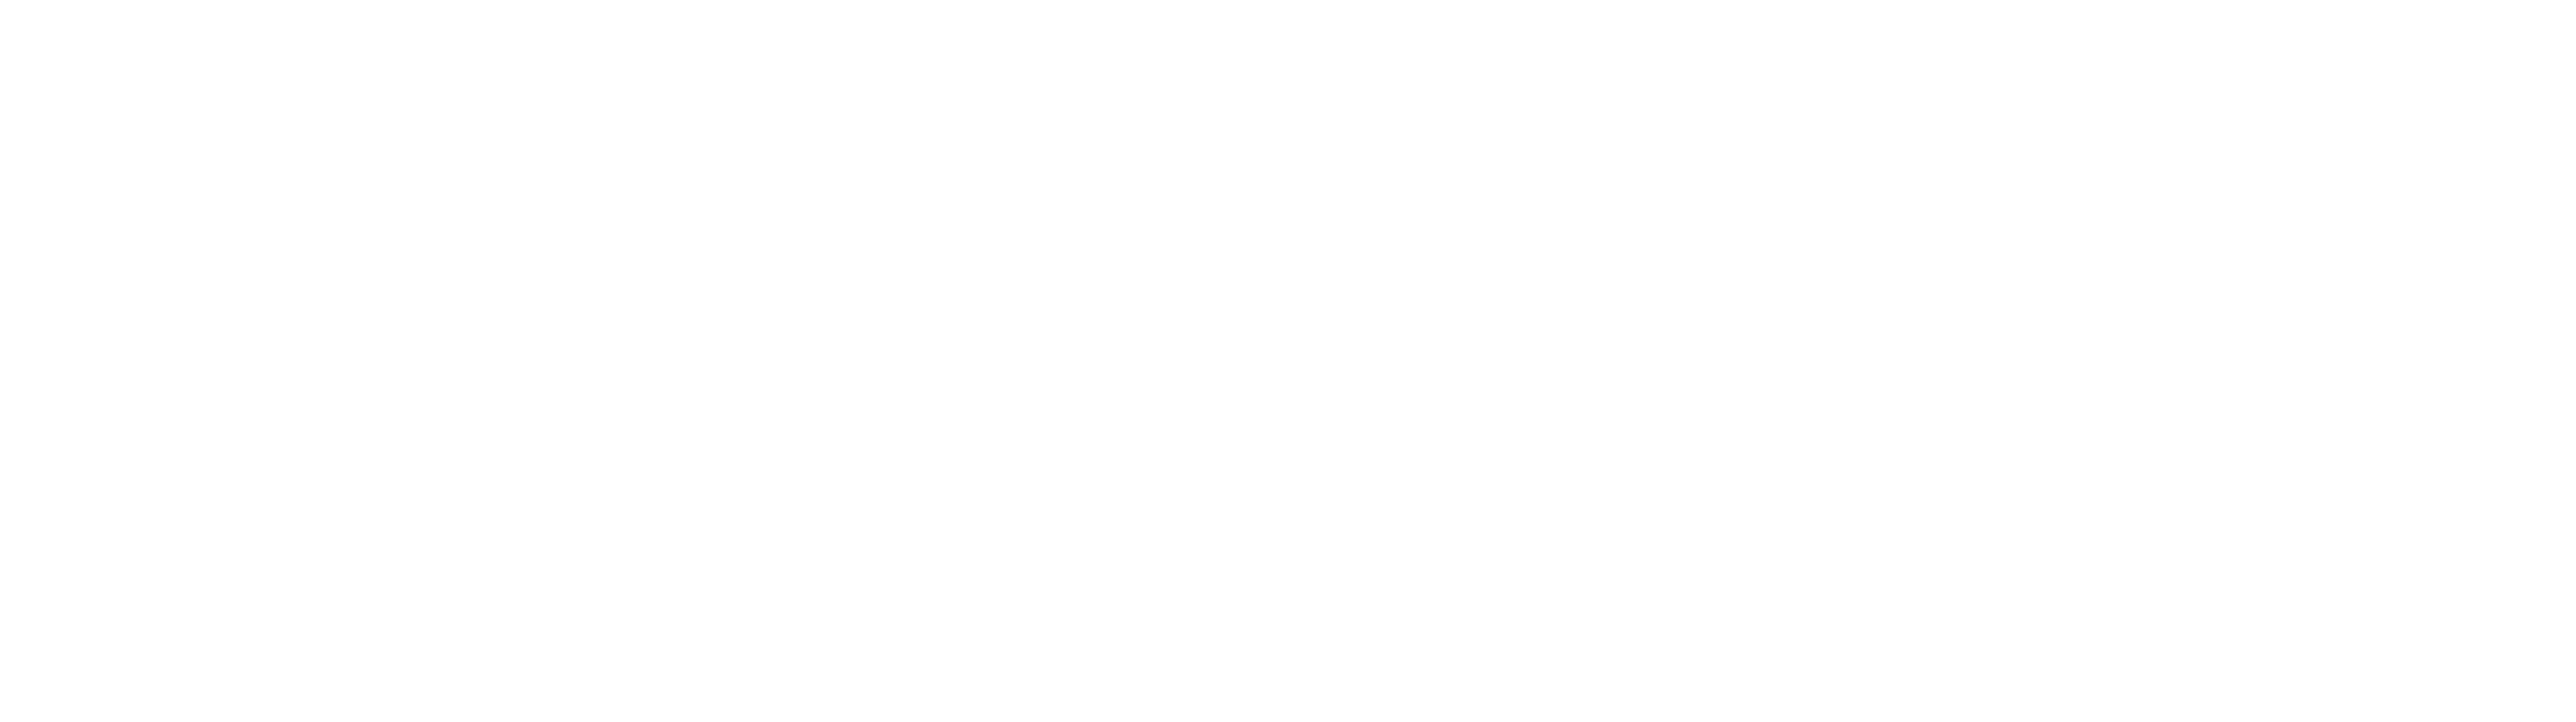 Anderson Bright logo wit